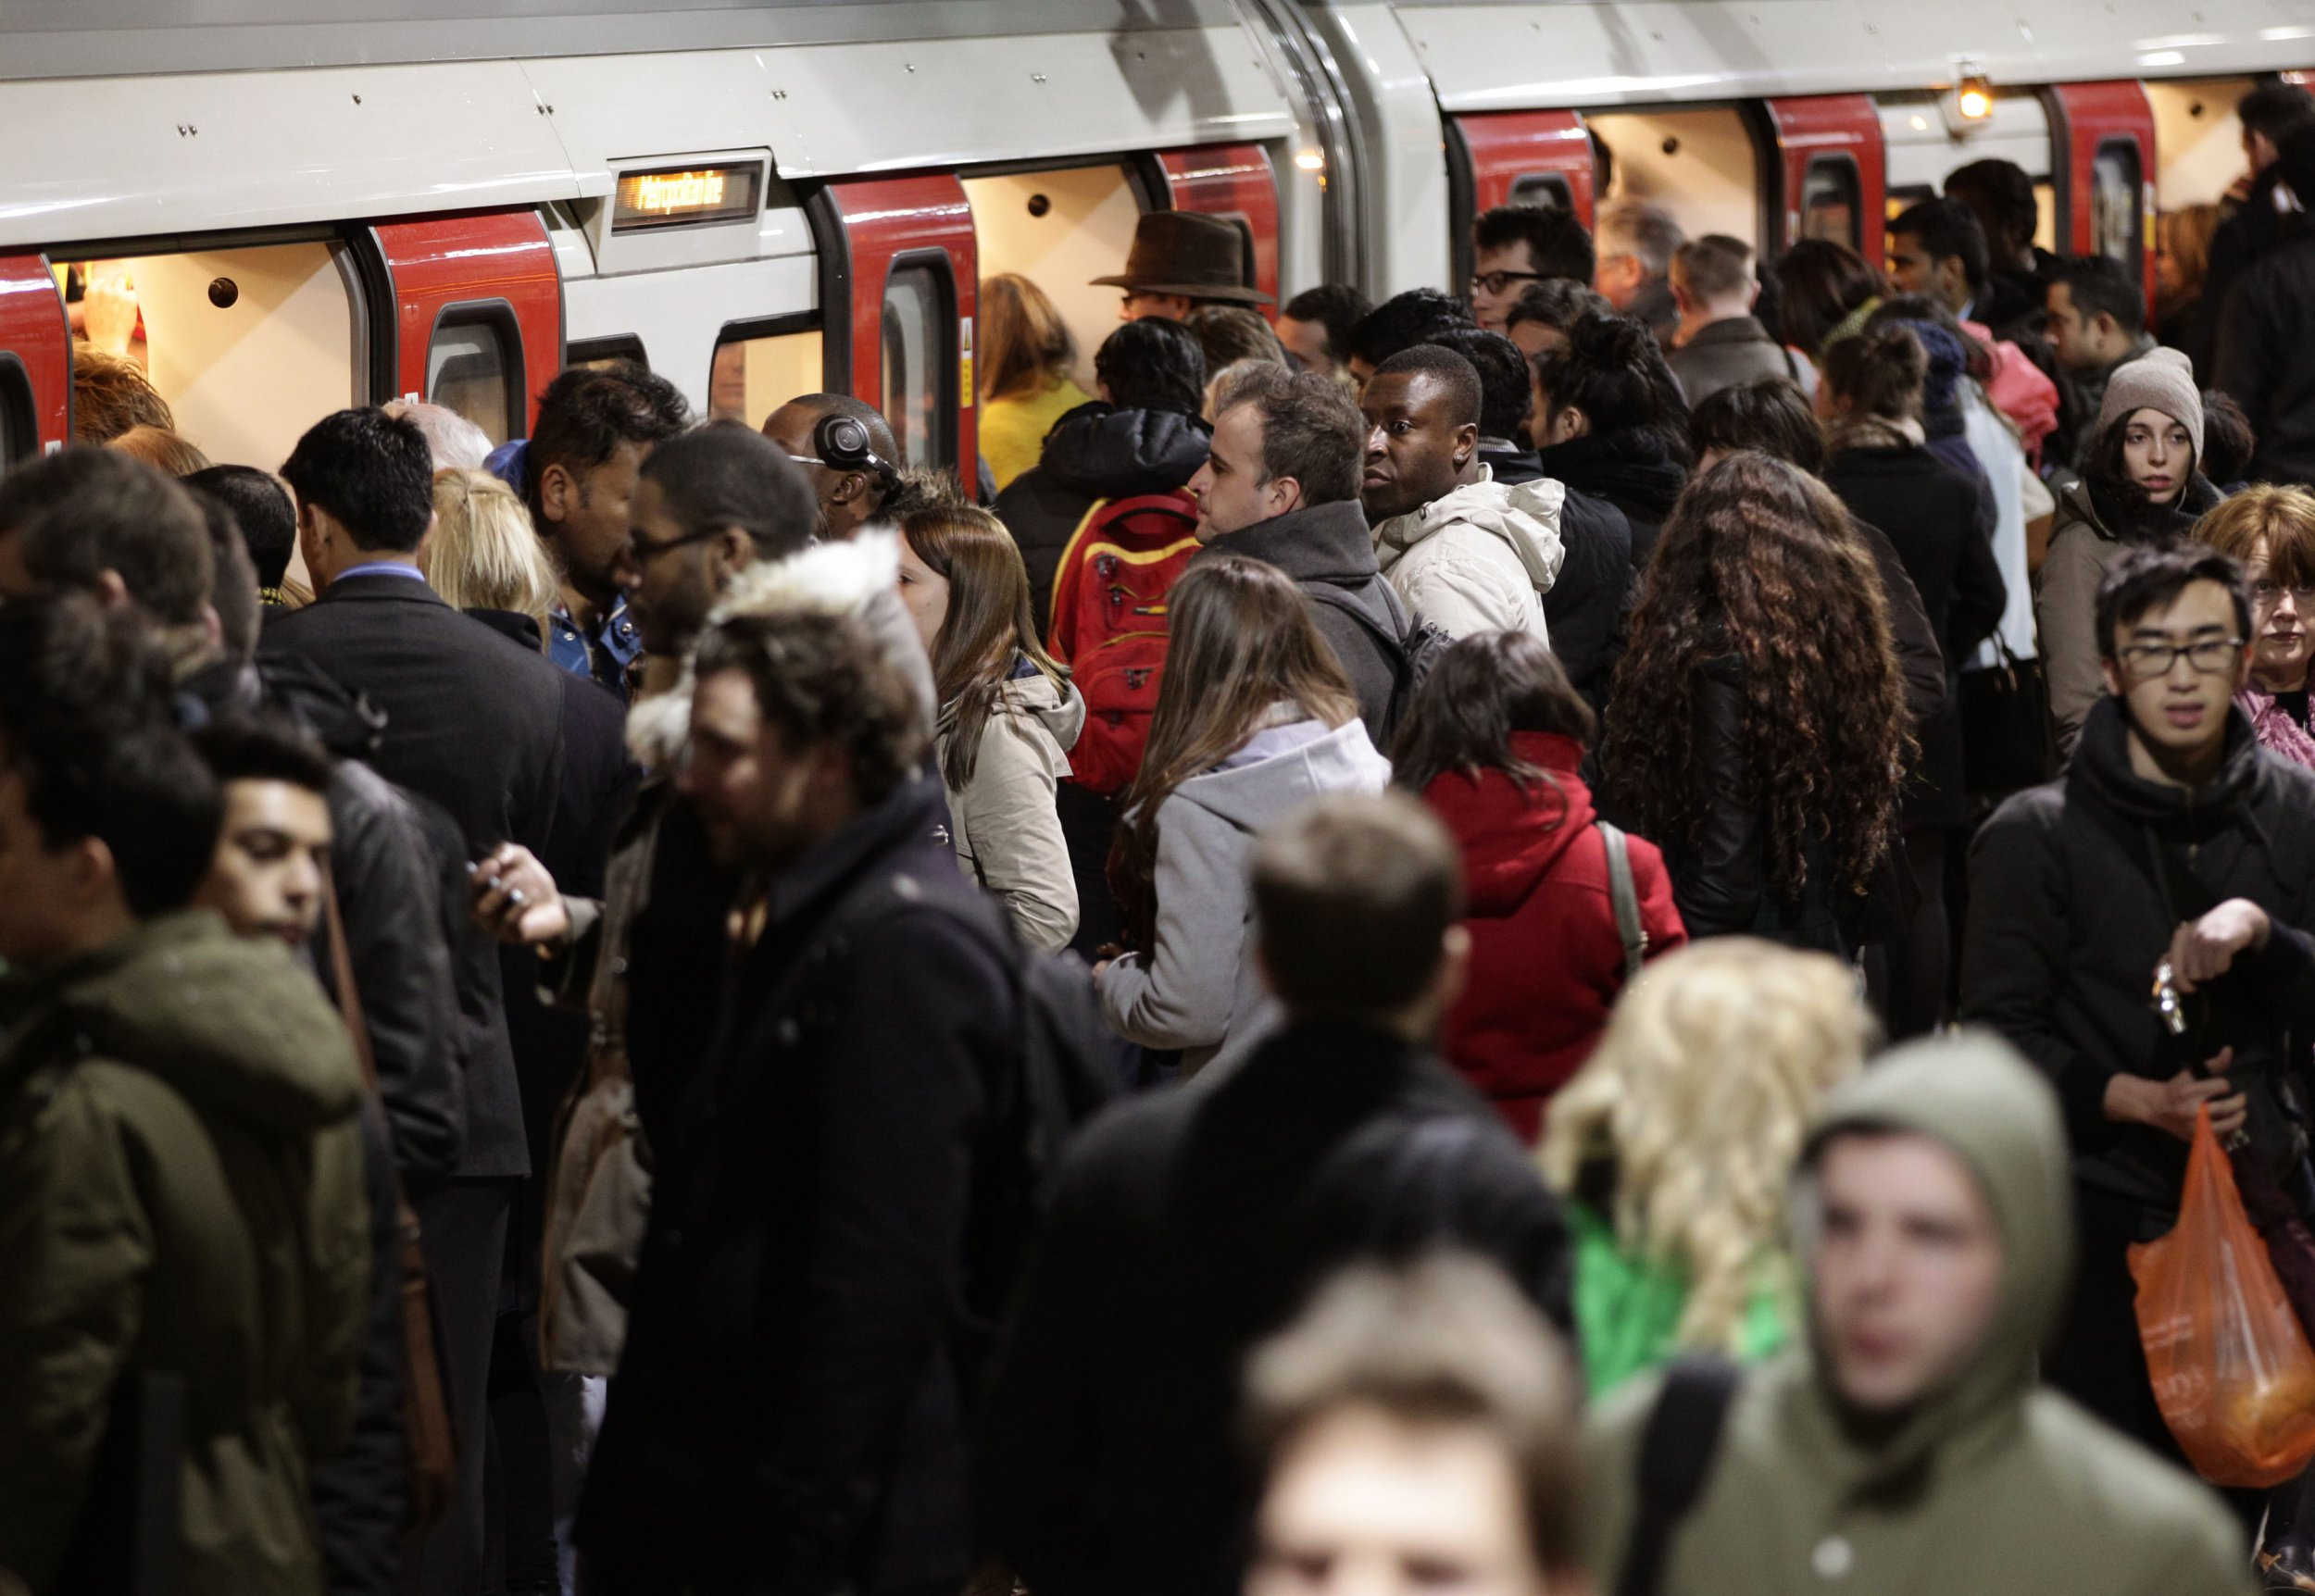 One hour on the Tube is as toxic as standing next to road for an entire day